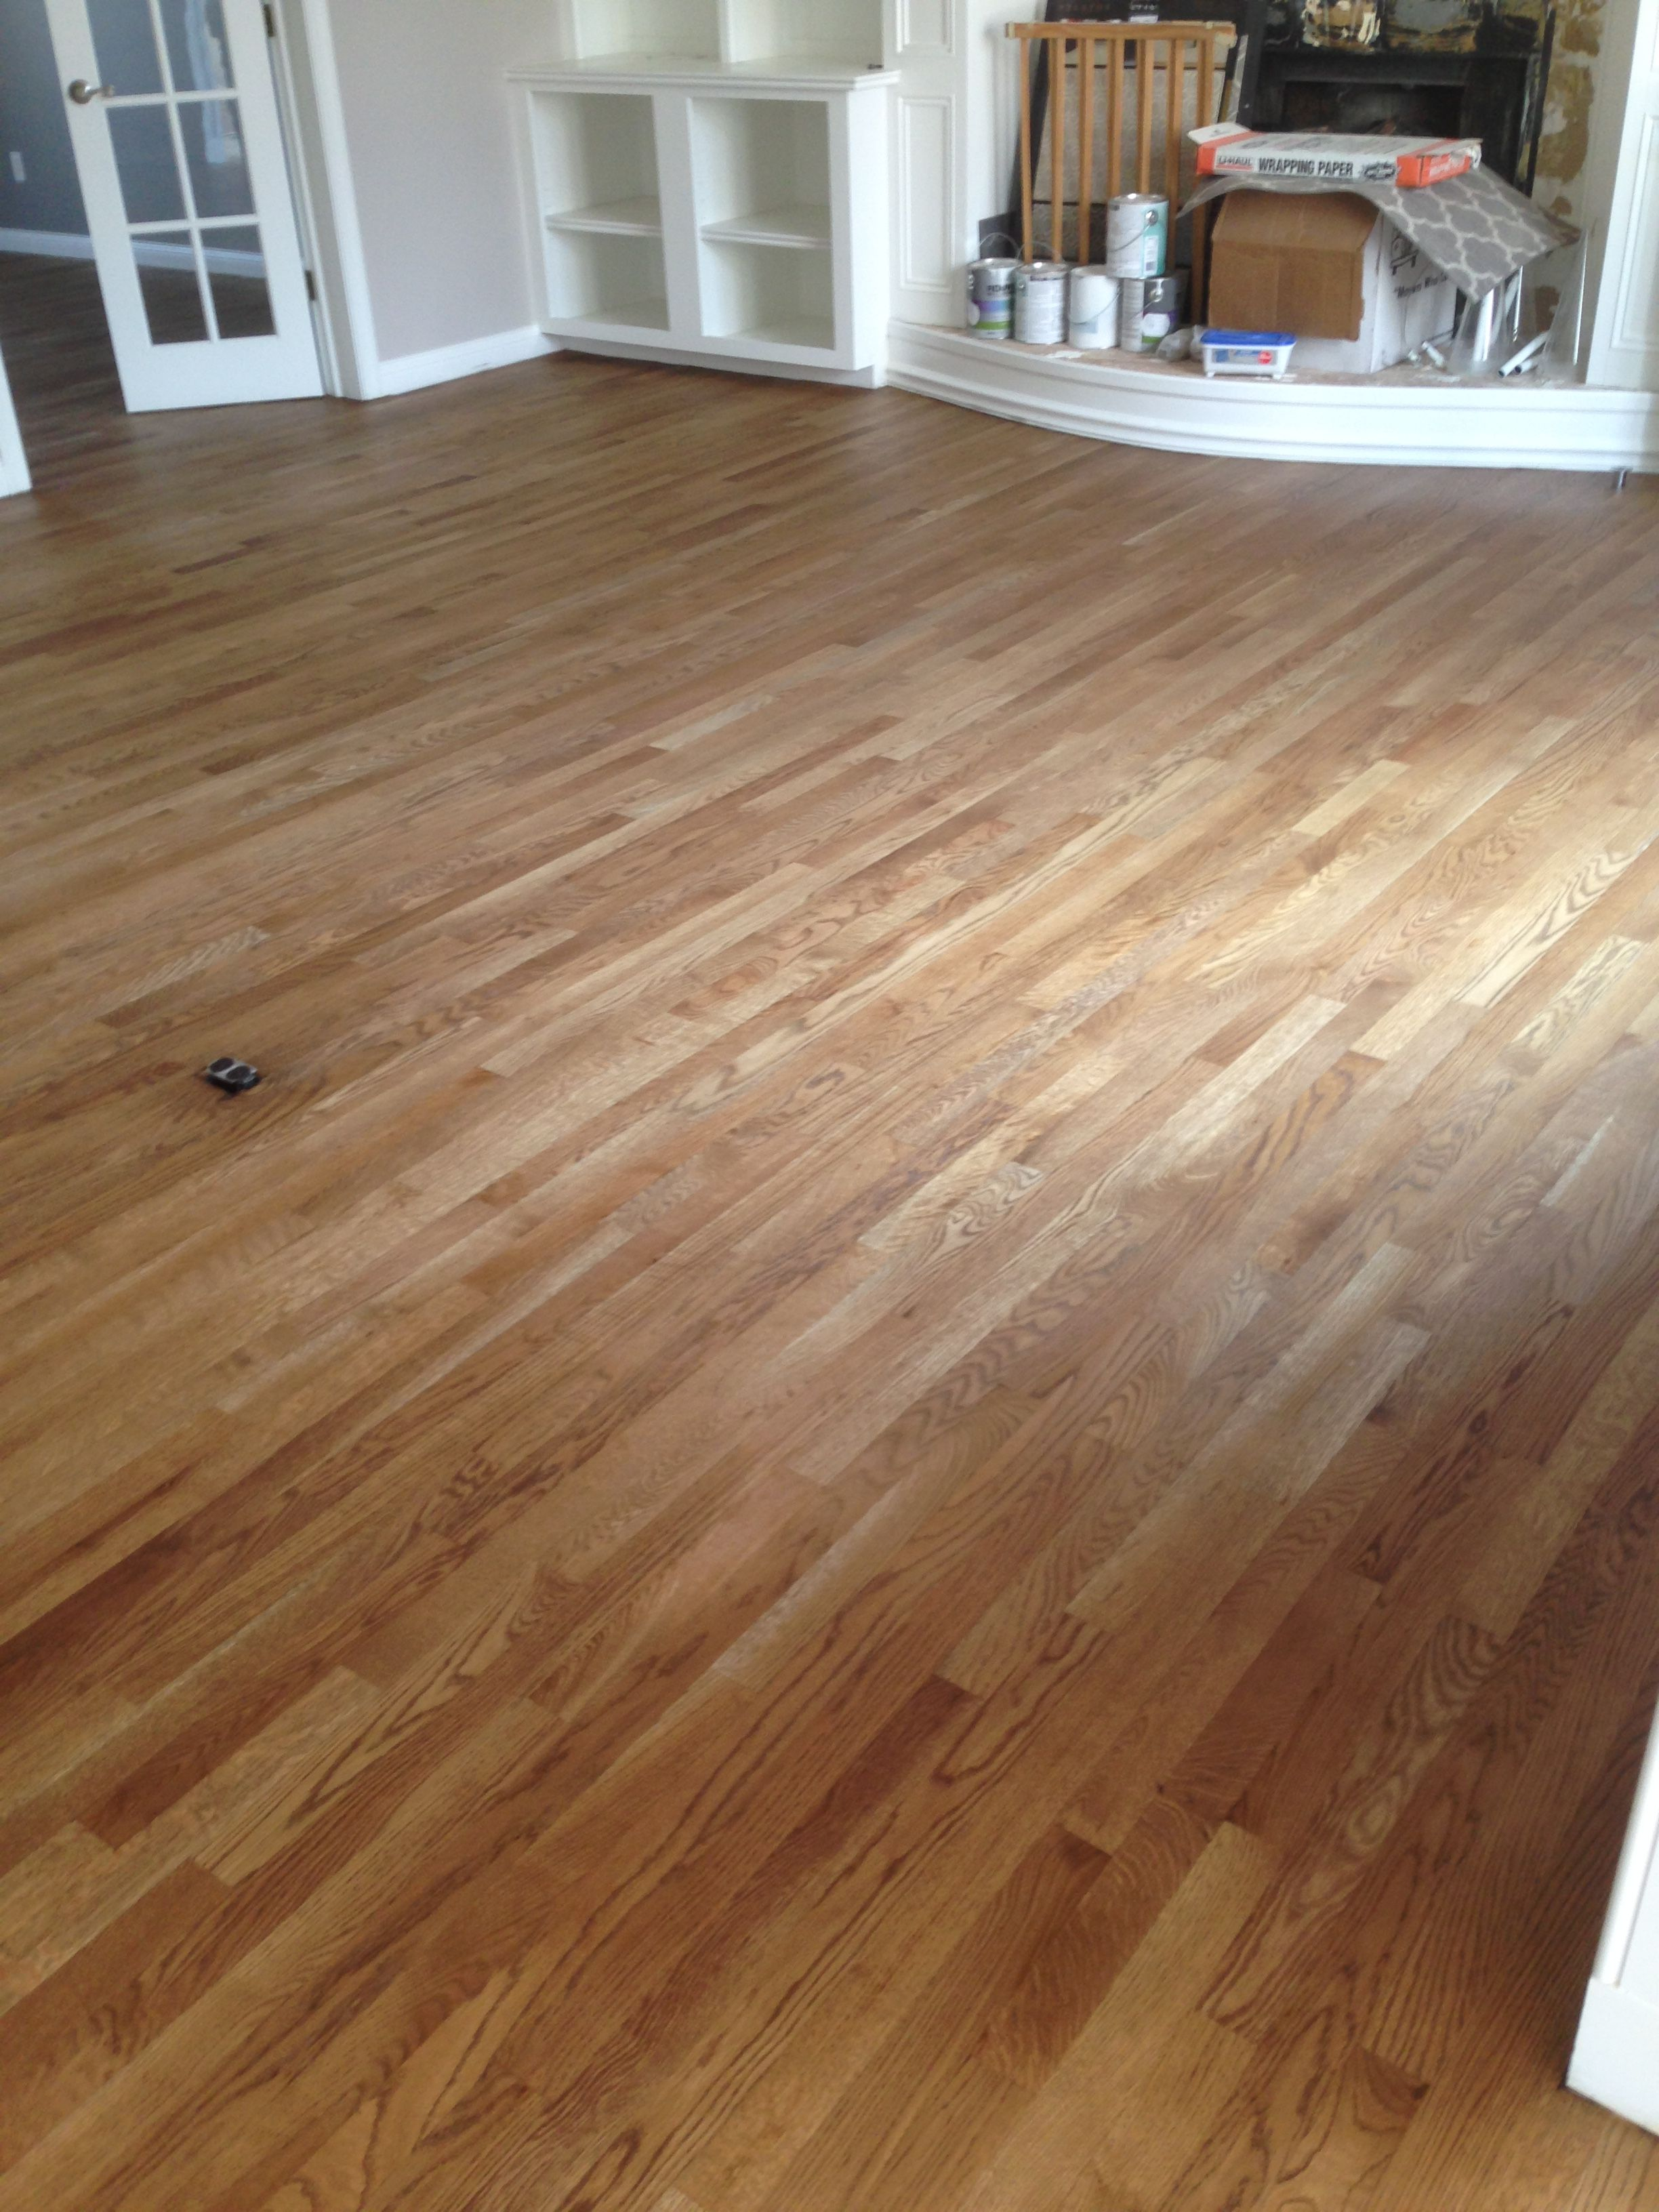 Finished Hardwood Flooring Types of hardwood floors